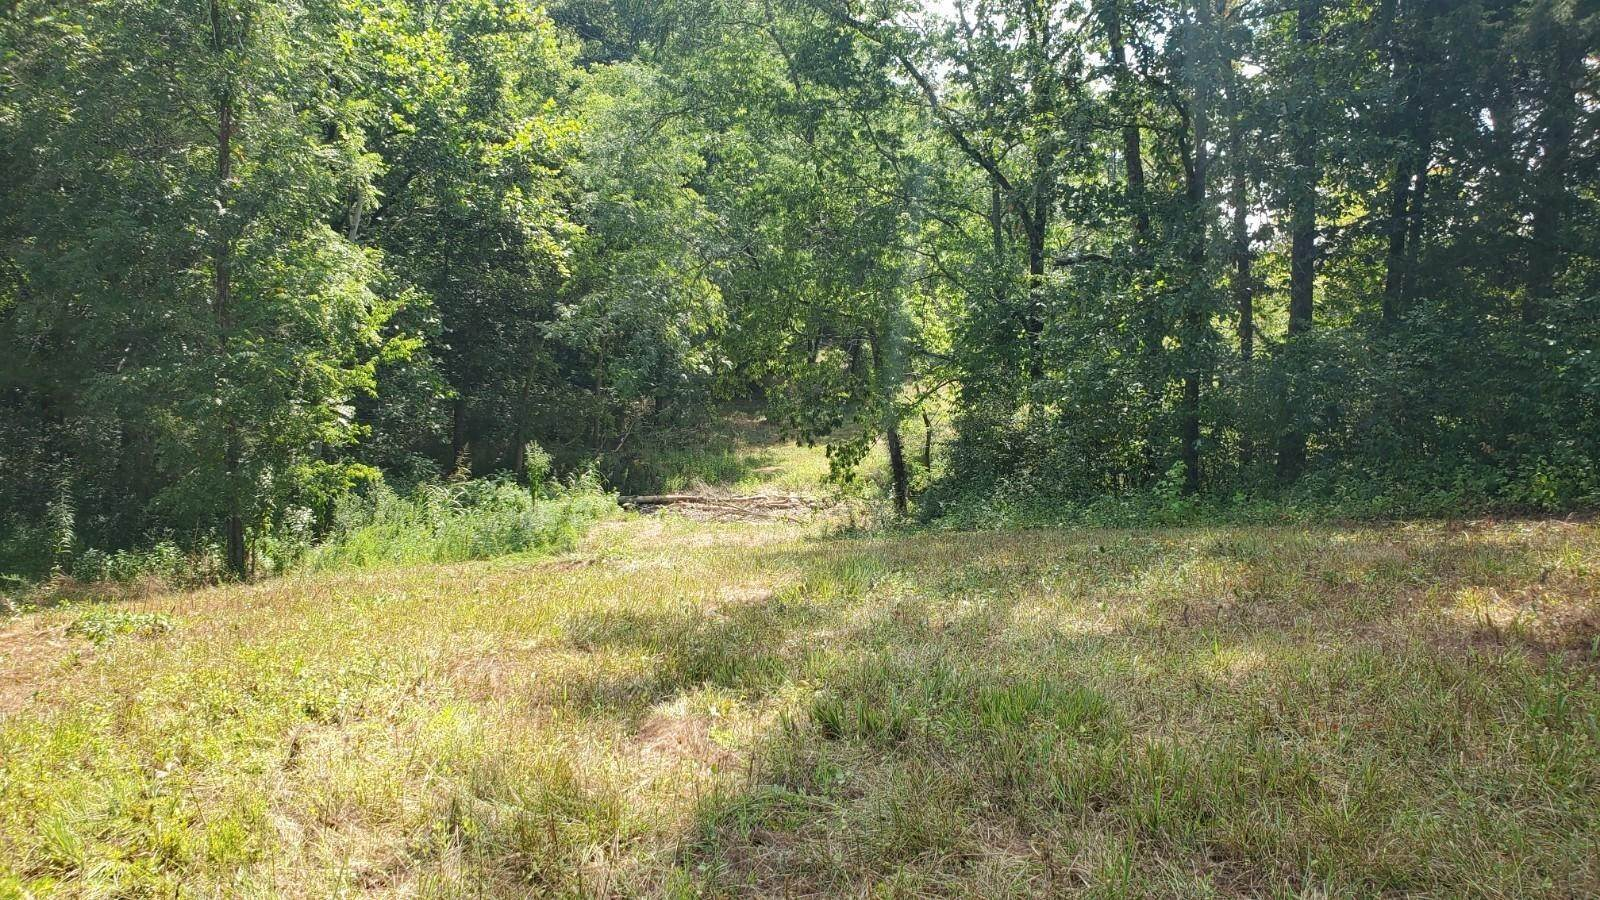 Land for Sale at Tract 2 Shahan Road Birchwood, Tennessee 37308 United States